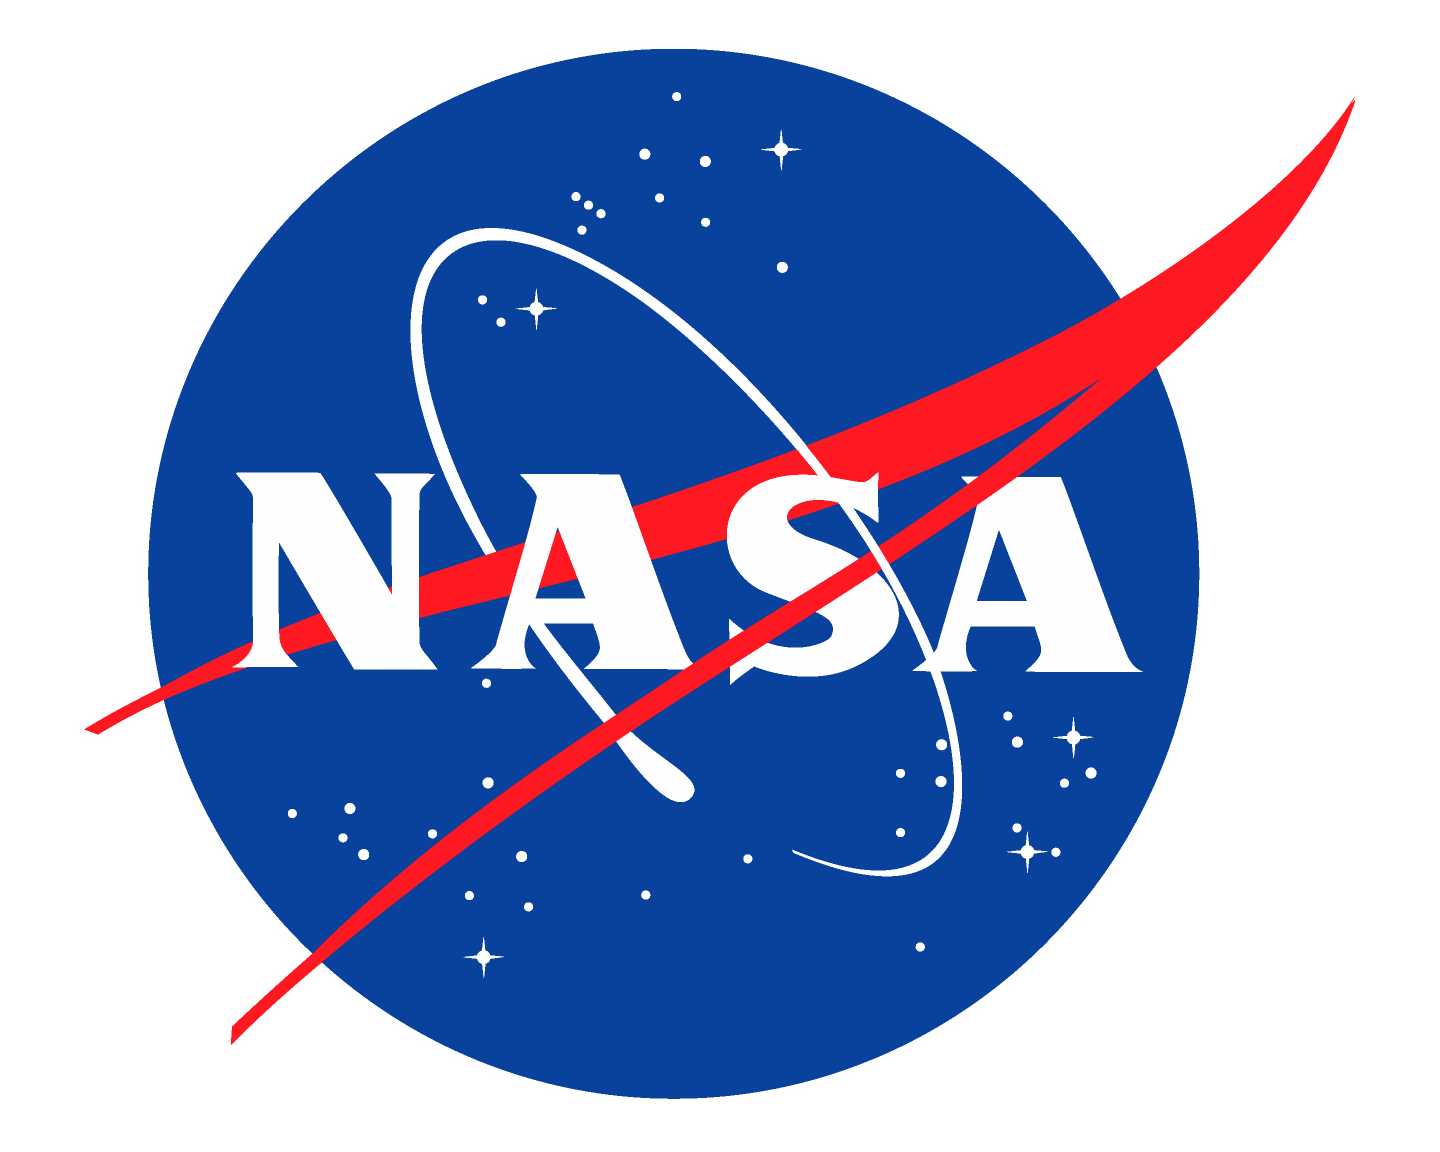 NASA Insignia Pics About Space